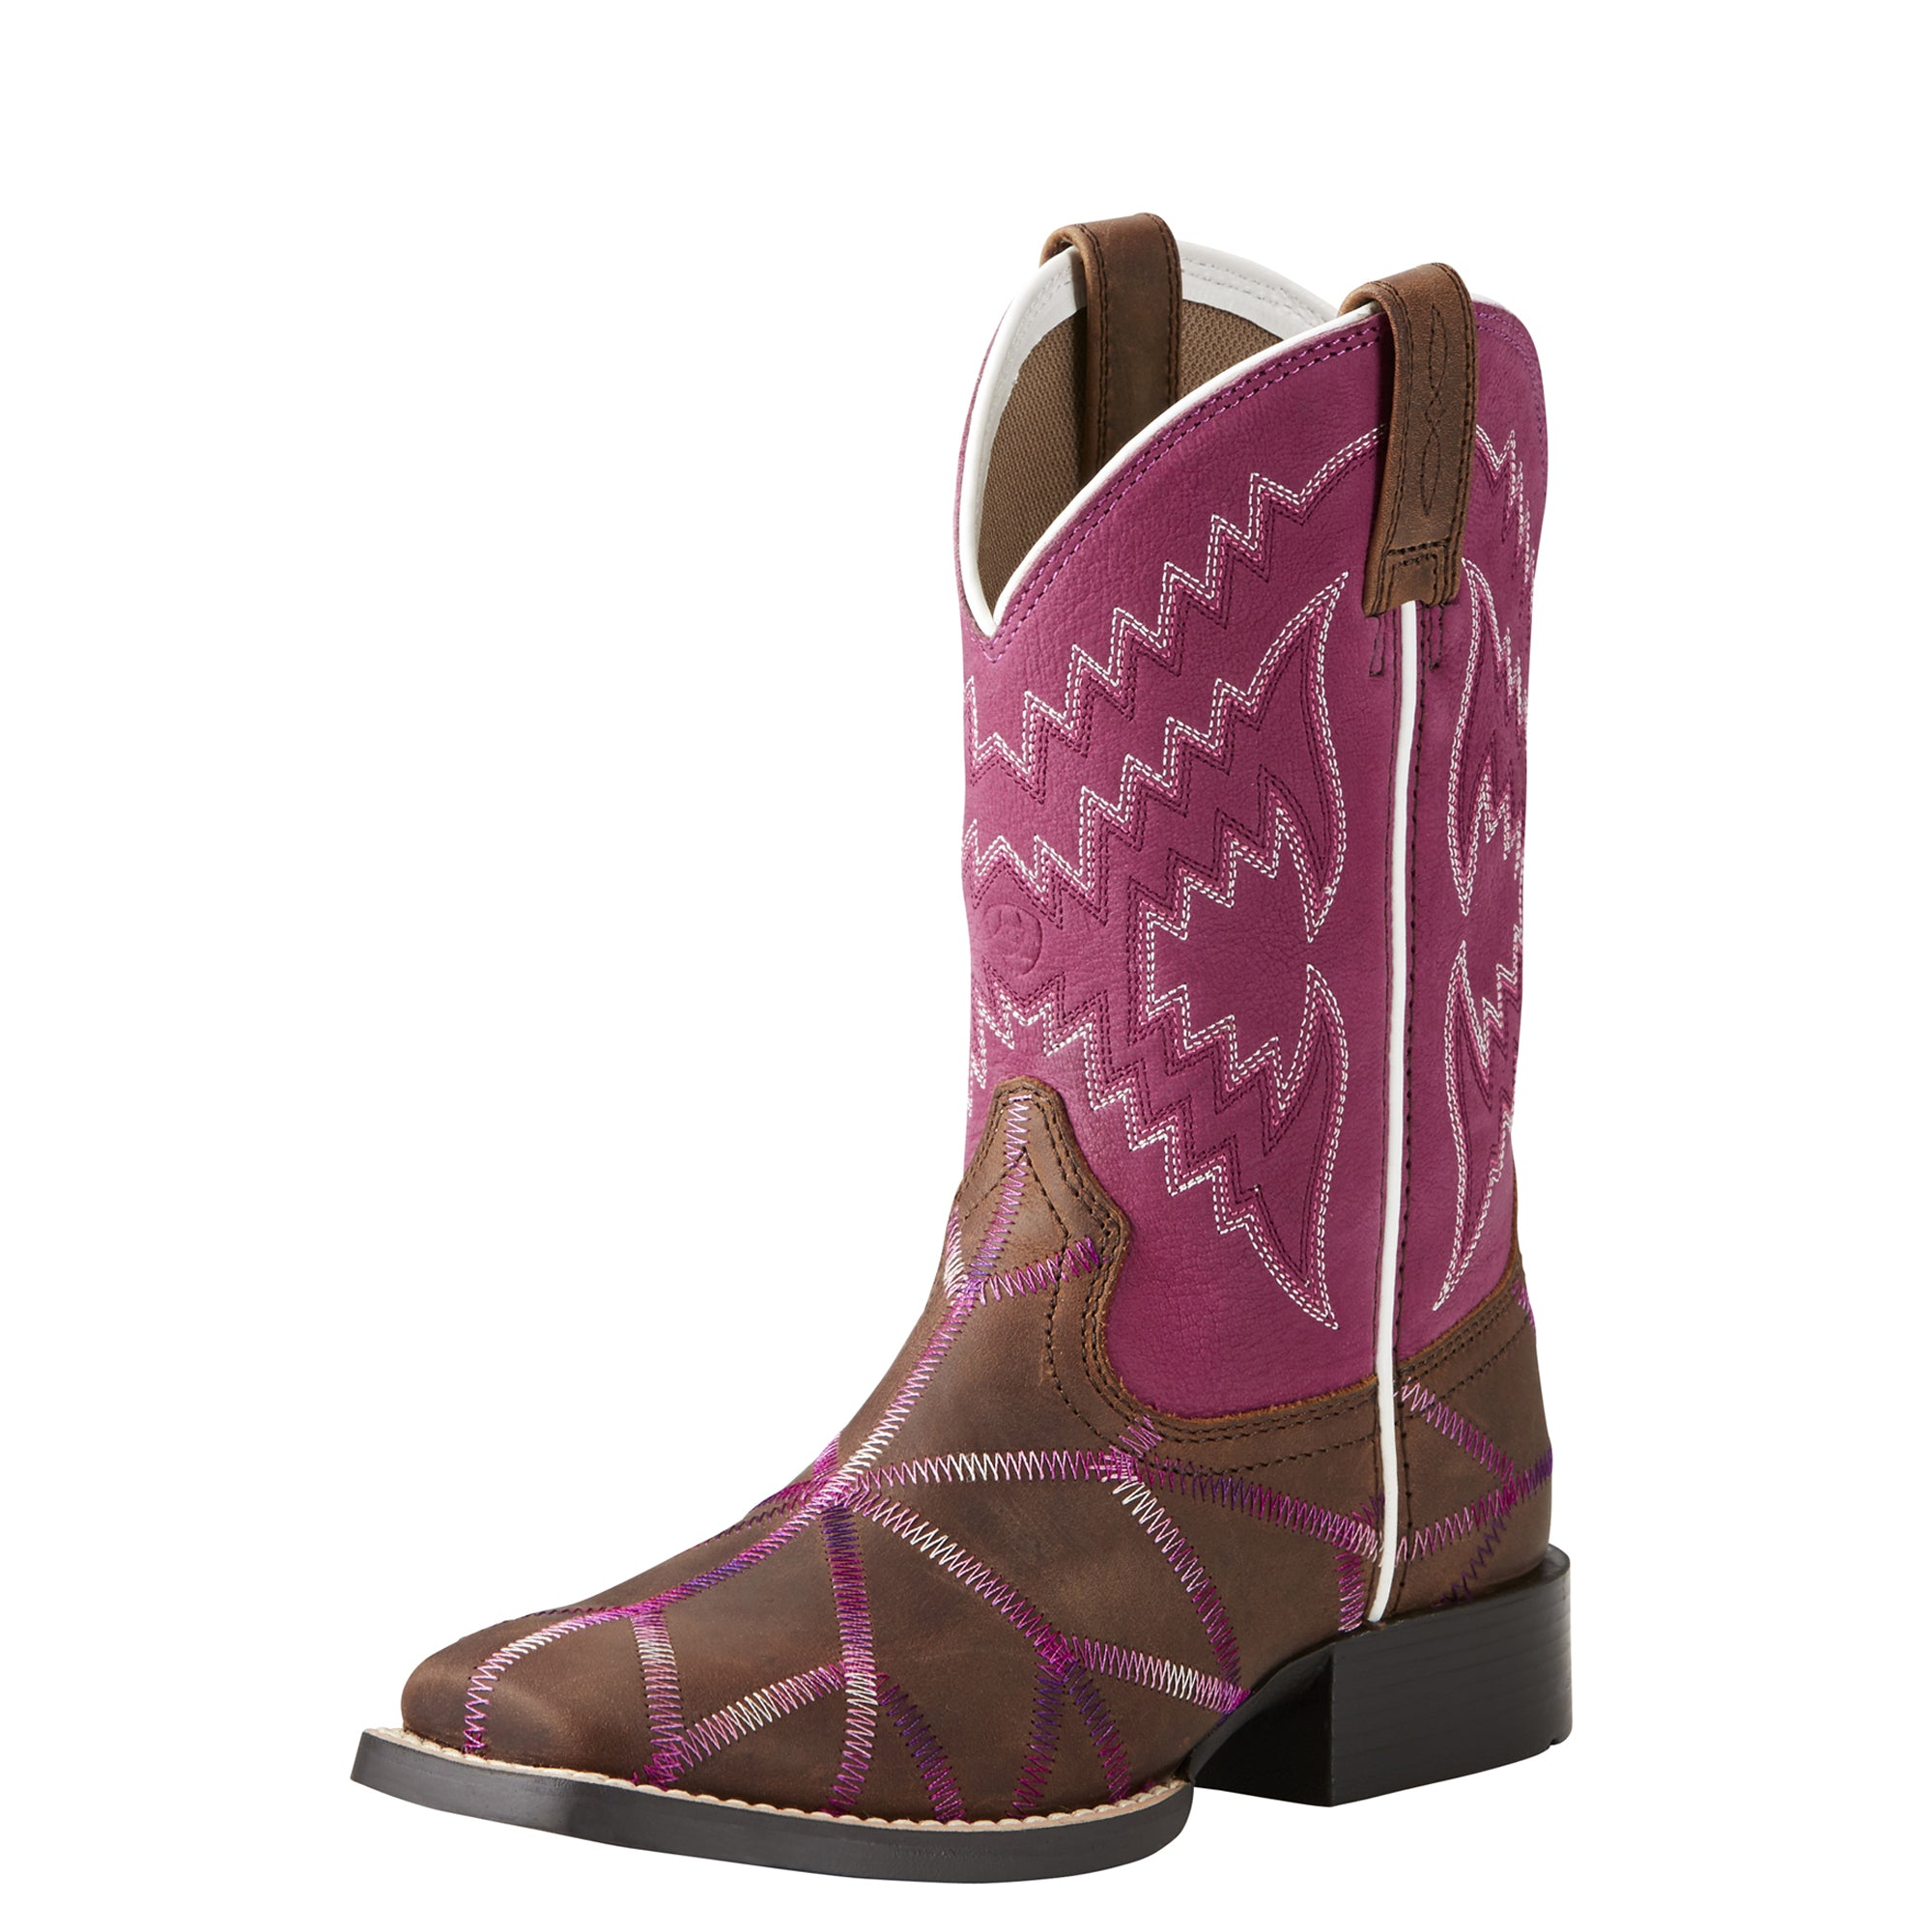 33a816ac7d0 Ariat Youth Girls Twisted Tycoon Western Boots-10021594 | Irvines ...